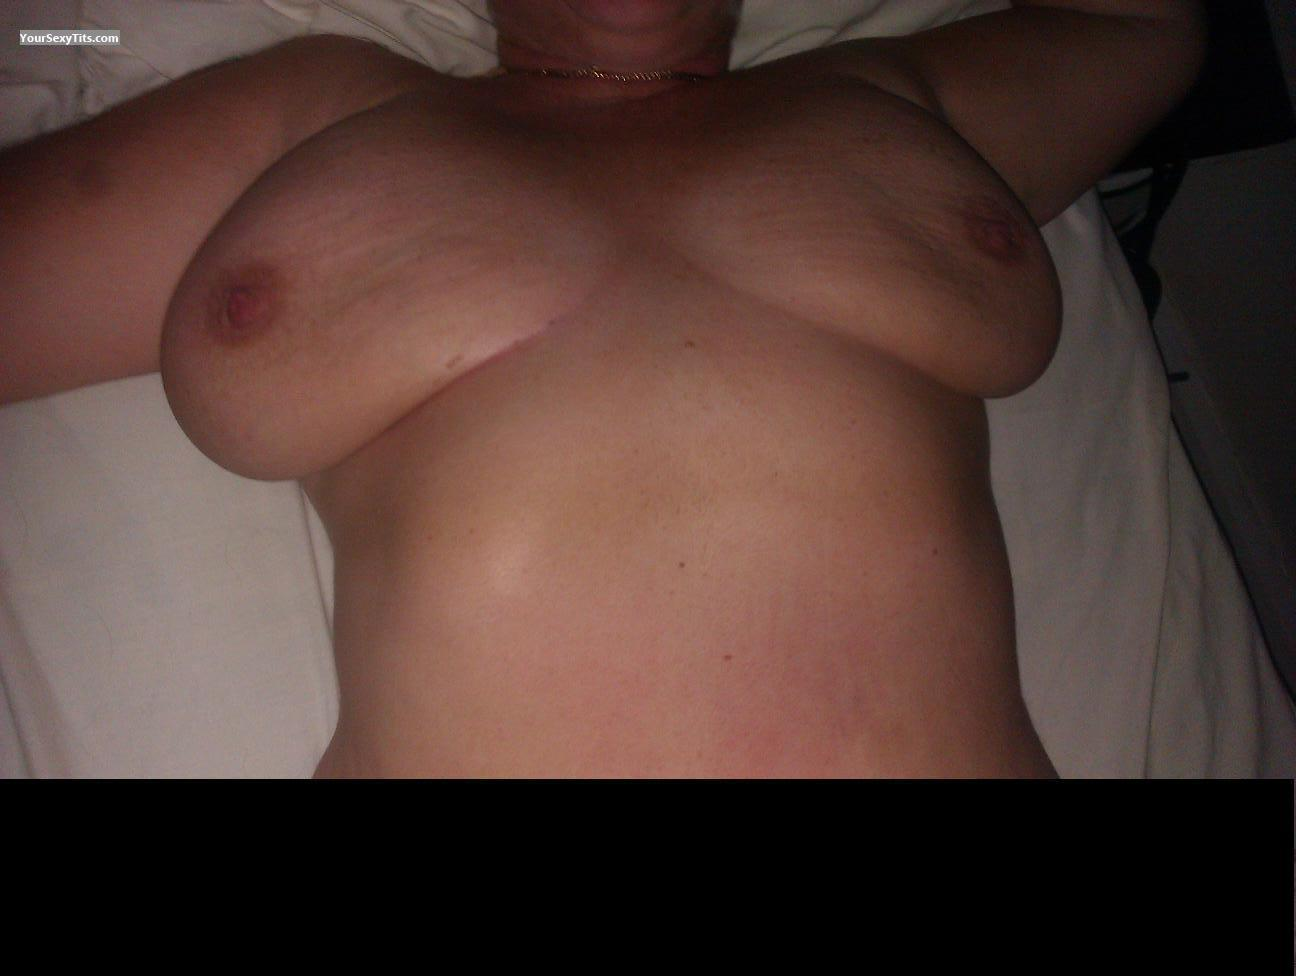 My Big Tits Nude In Bed